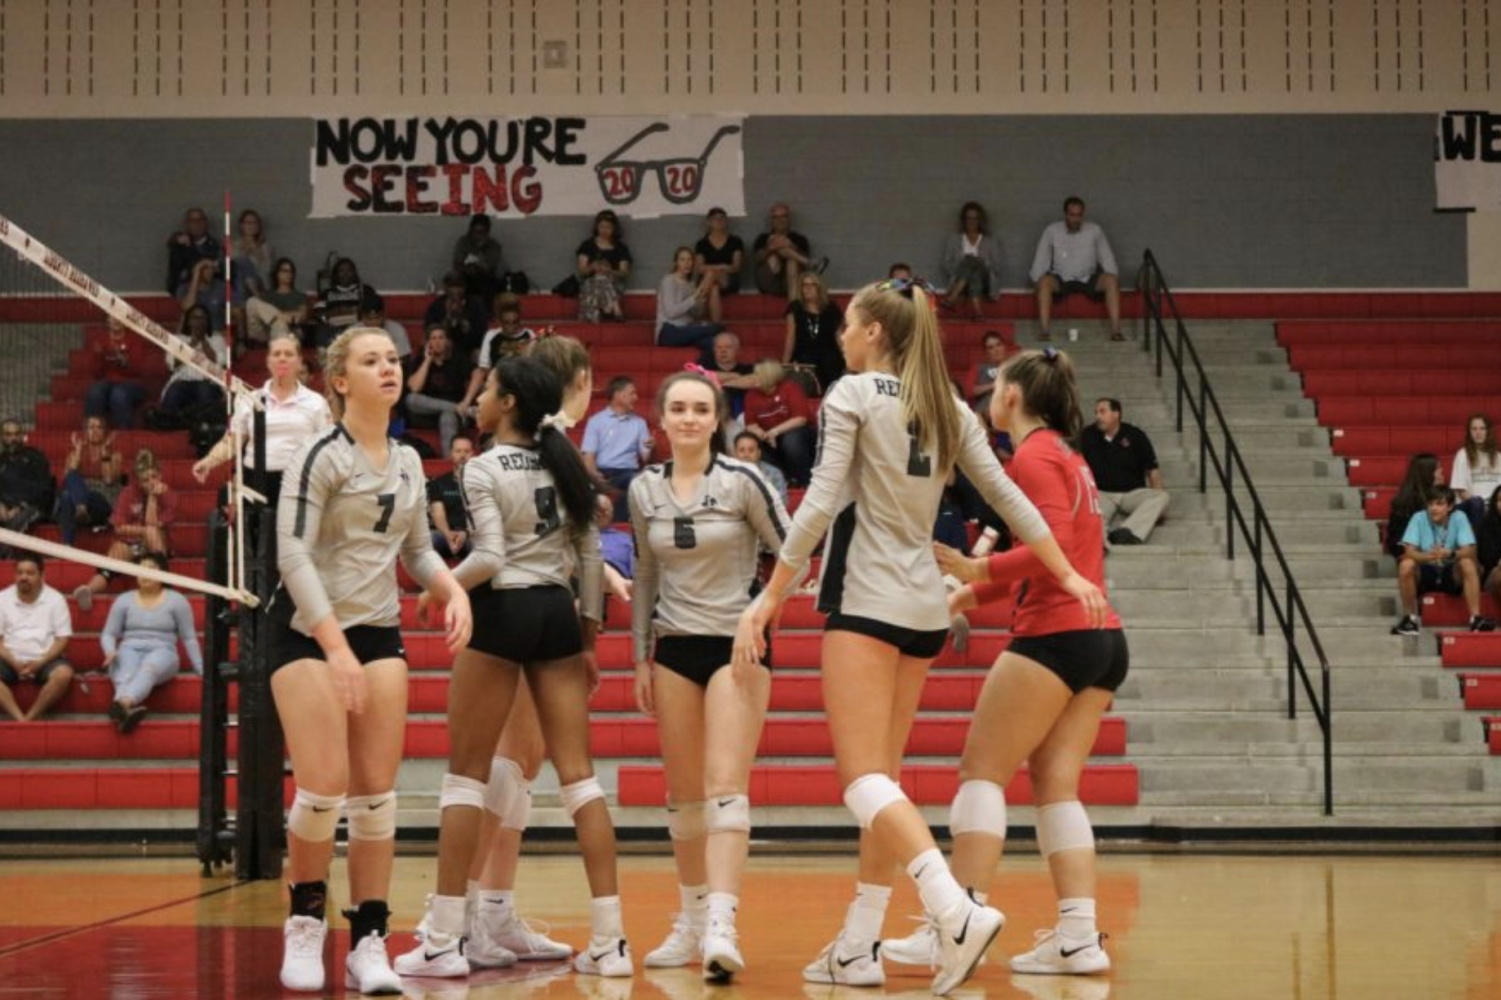 Cheering each other on, the Redhawks meet in the middle of the court after scoring a point. Volleyball will continue its playoff berth on Thursday against RL Turner High School.